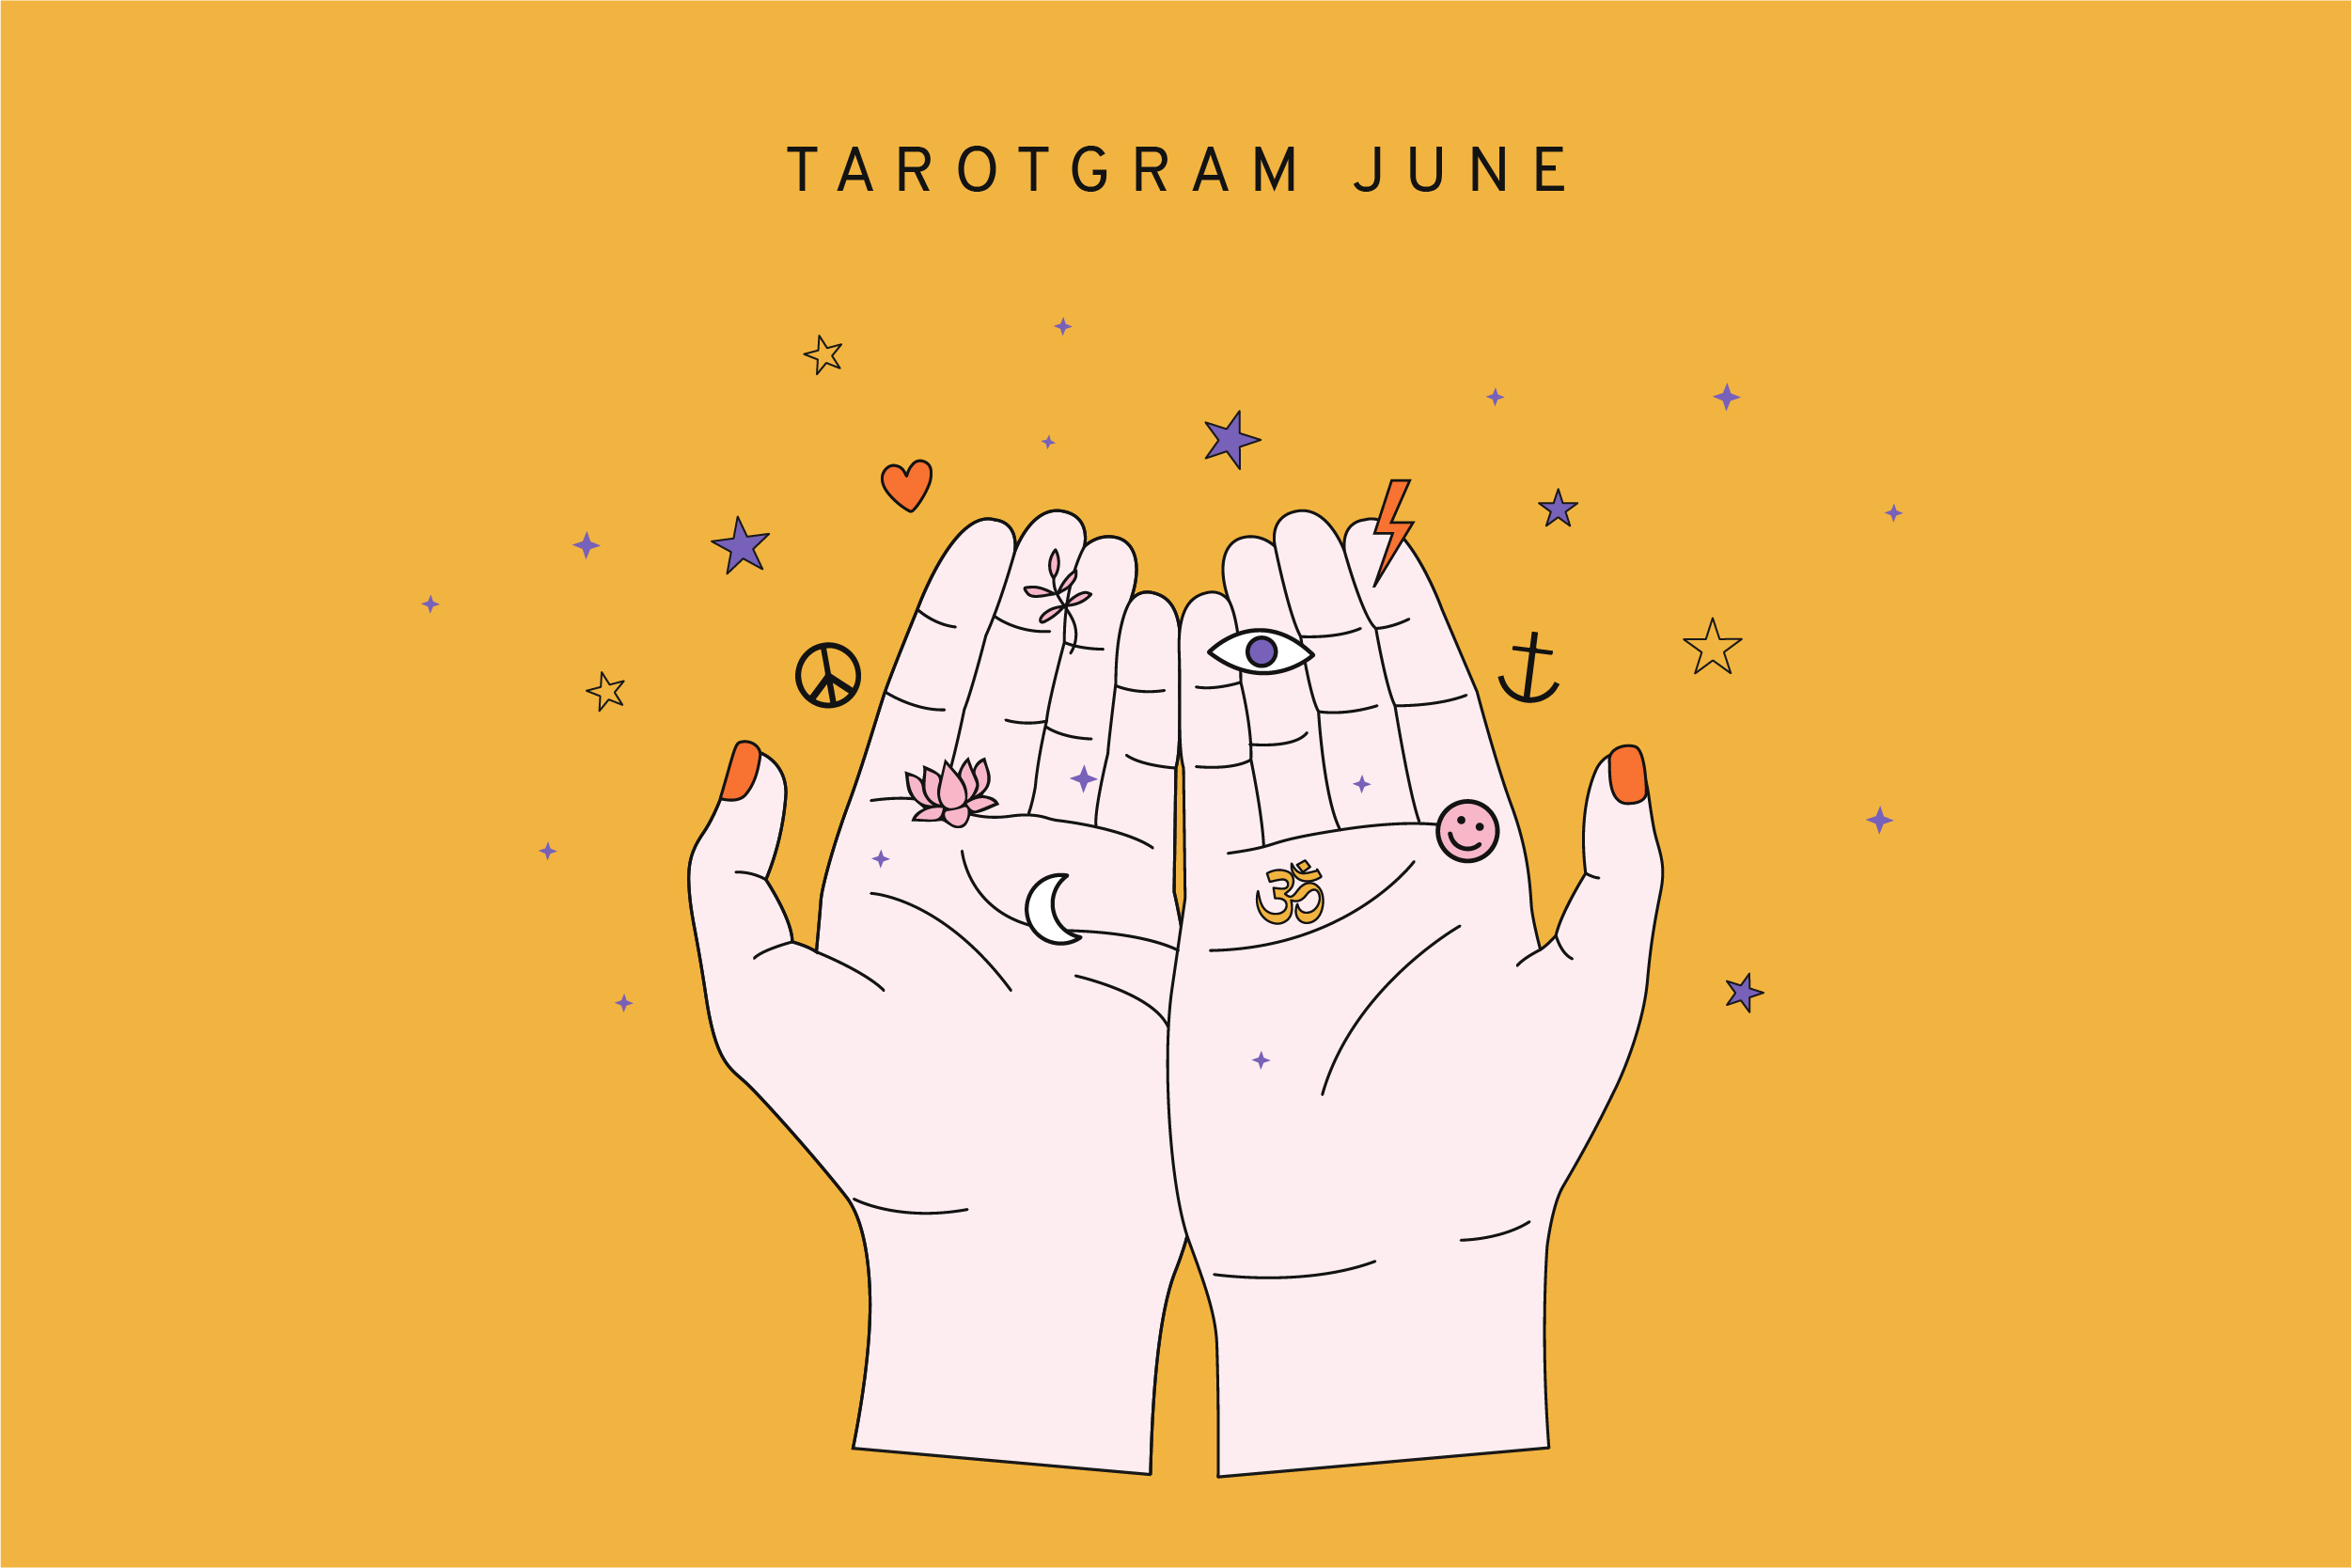 MG_Tarotgram_2020_Blog-June